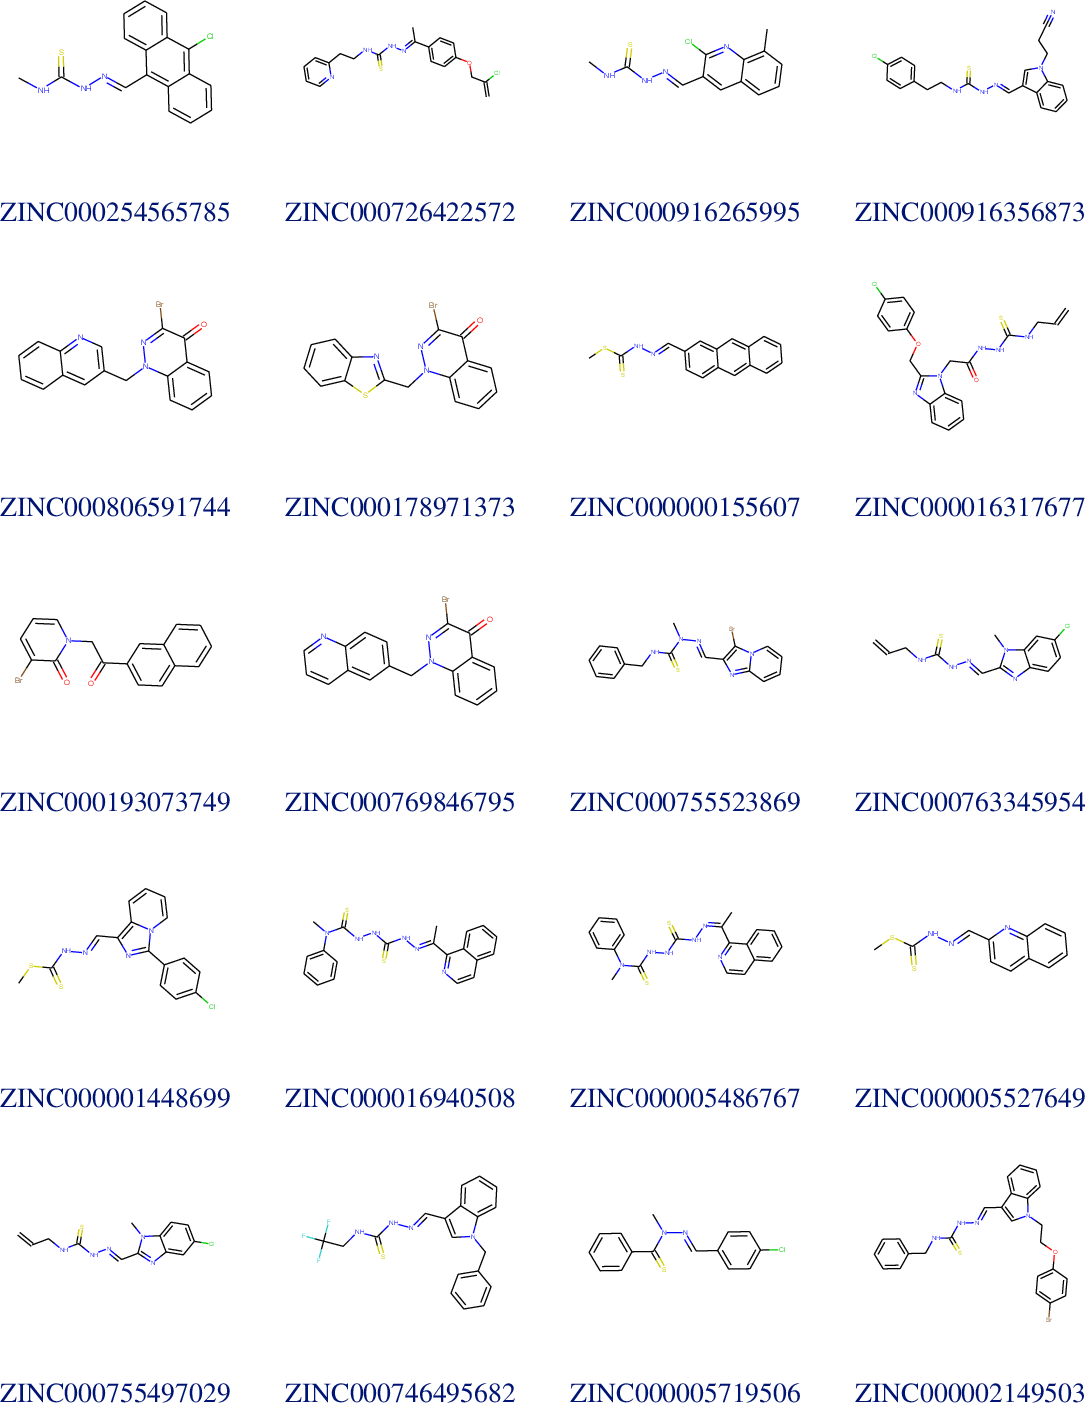 Figure 2 for Large-scale ligand-based virtual screening for SARS-CoV-2 inhibitors using deep neural networks